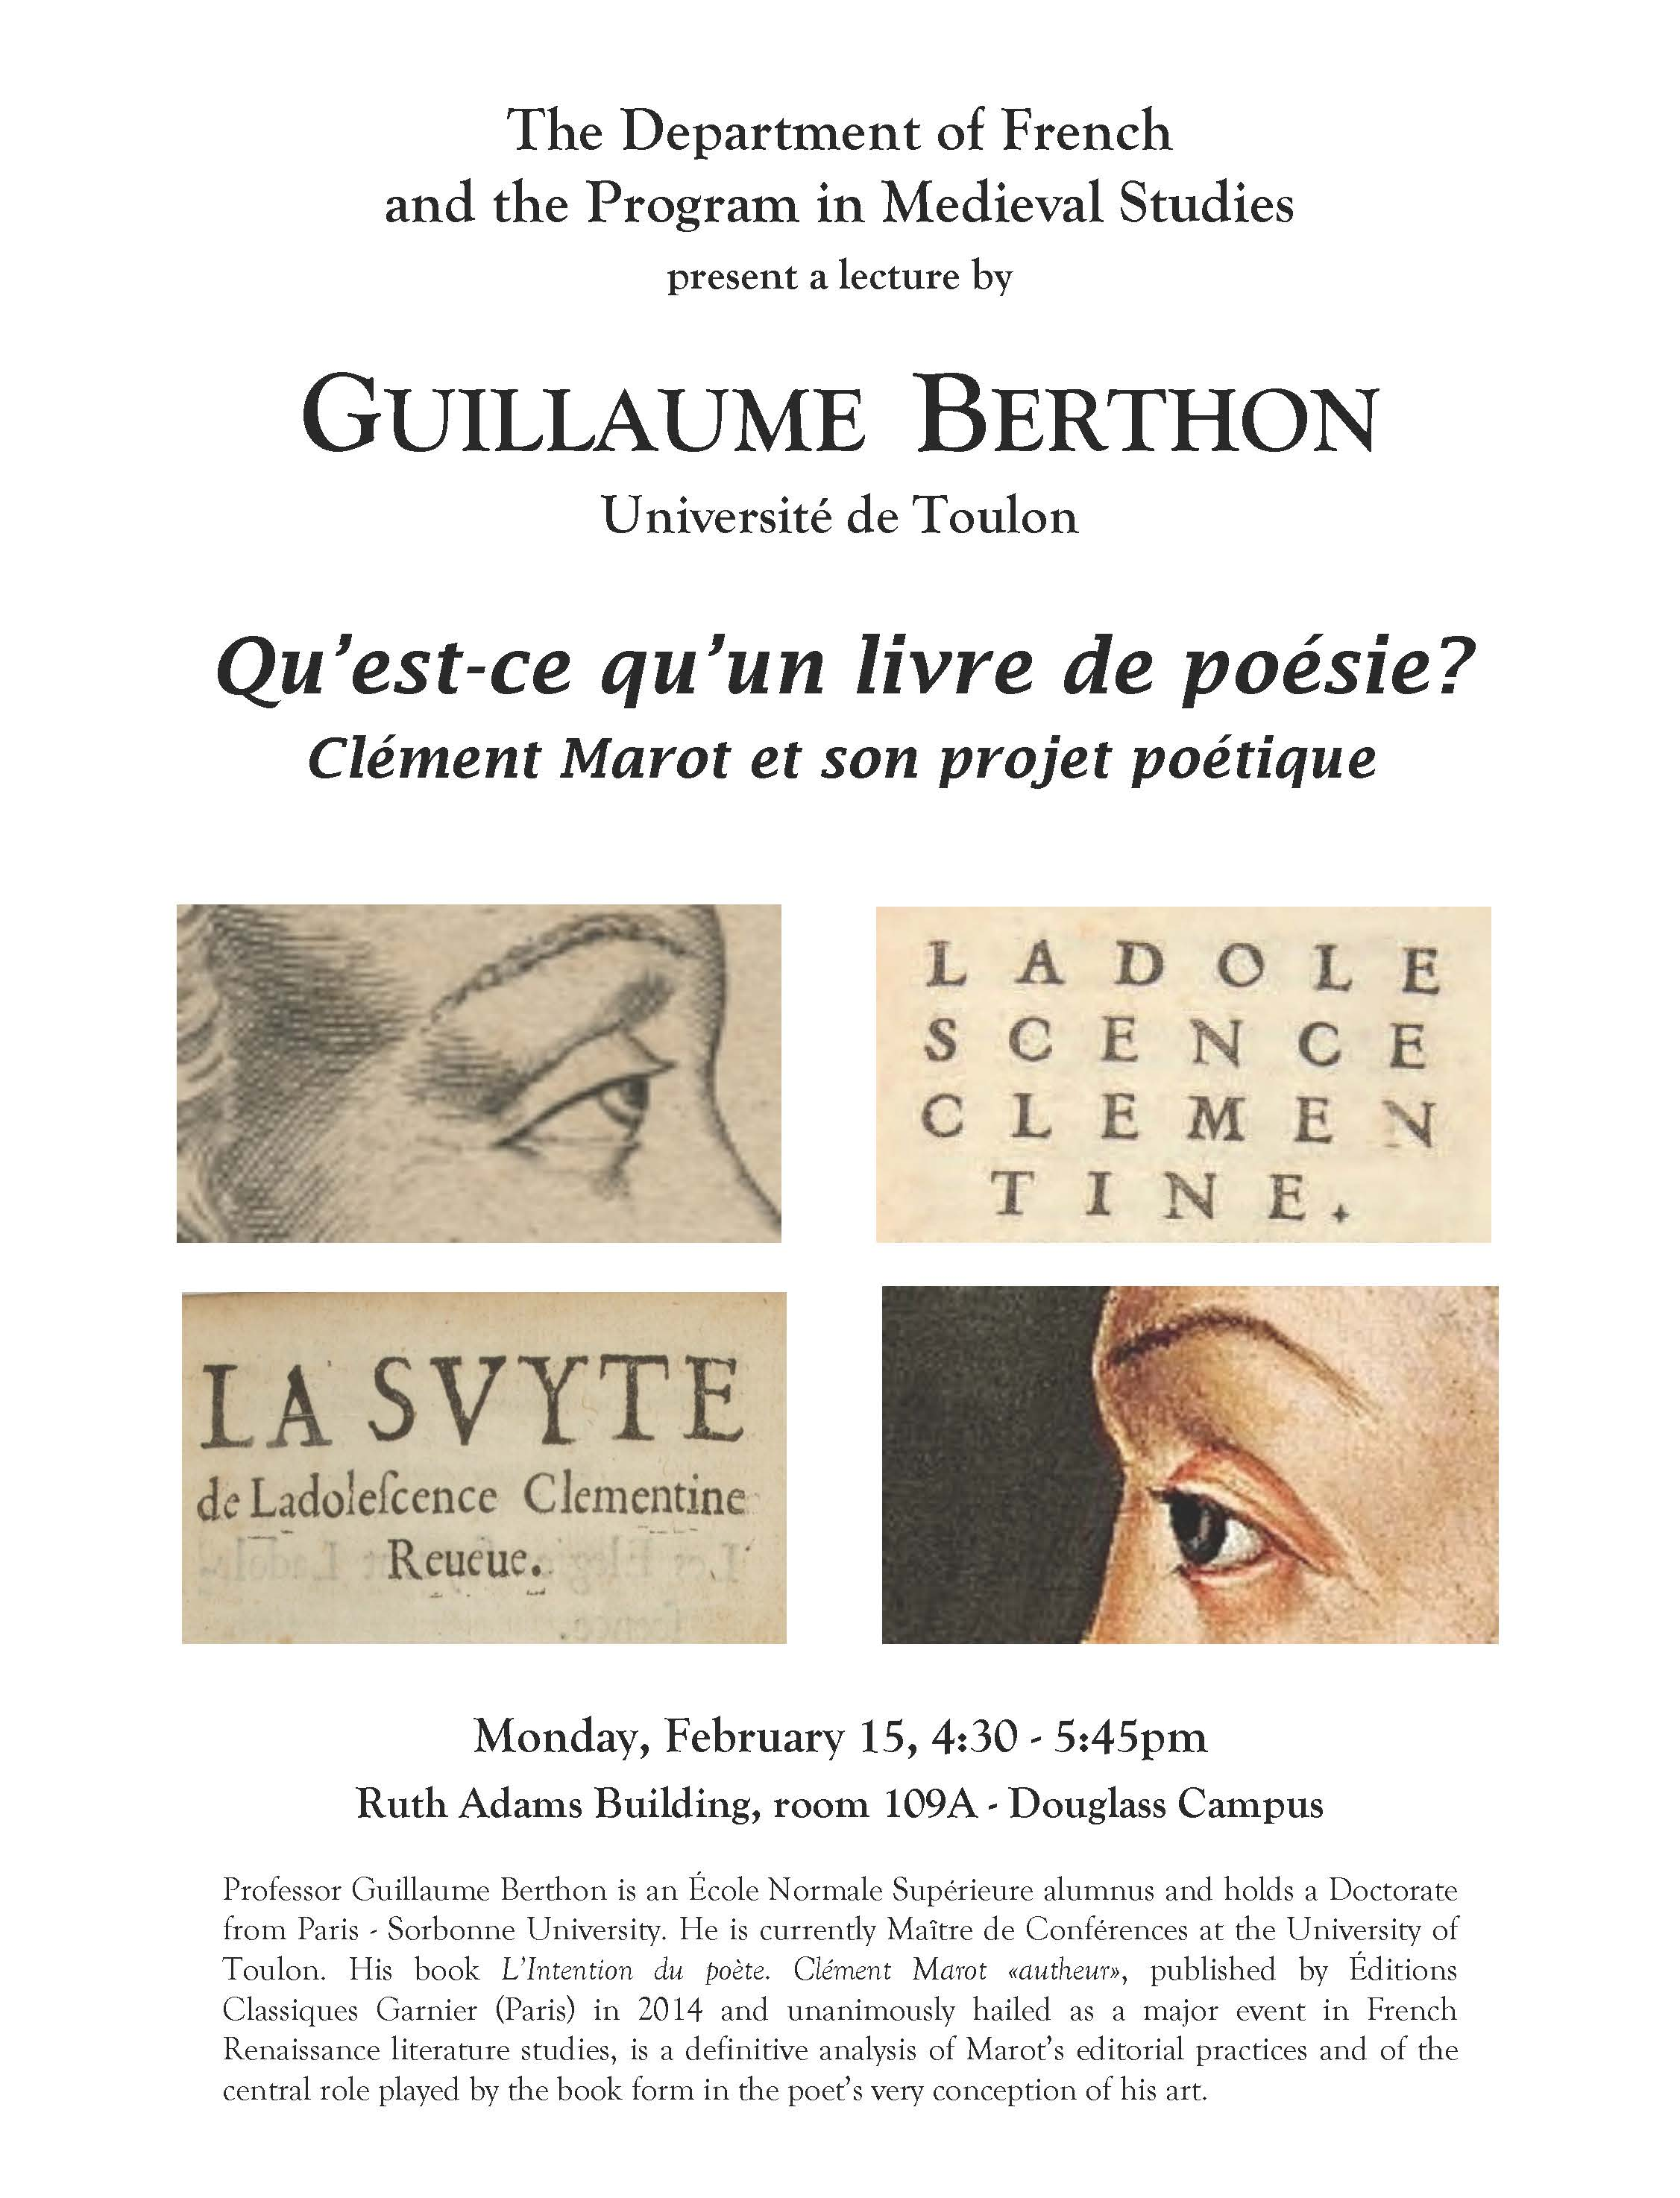 Berthon_Lecture_Flyer.jpg